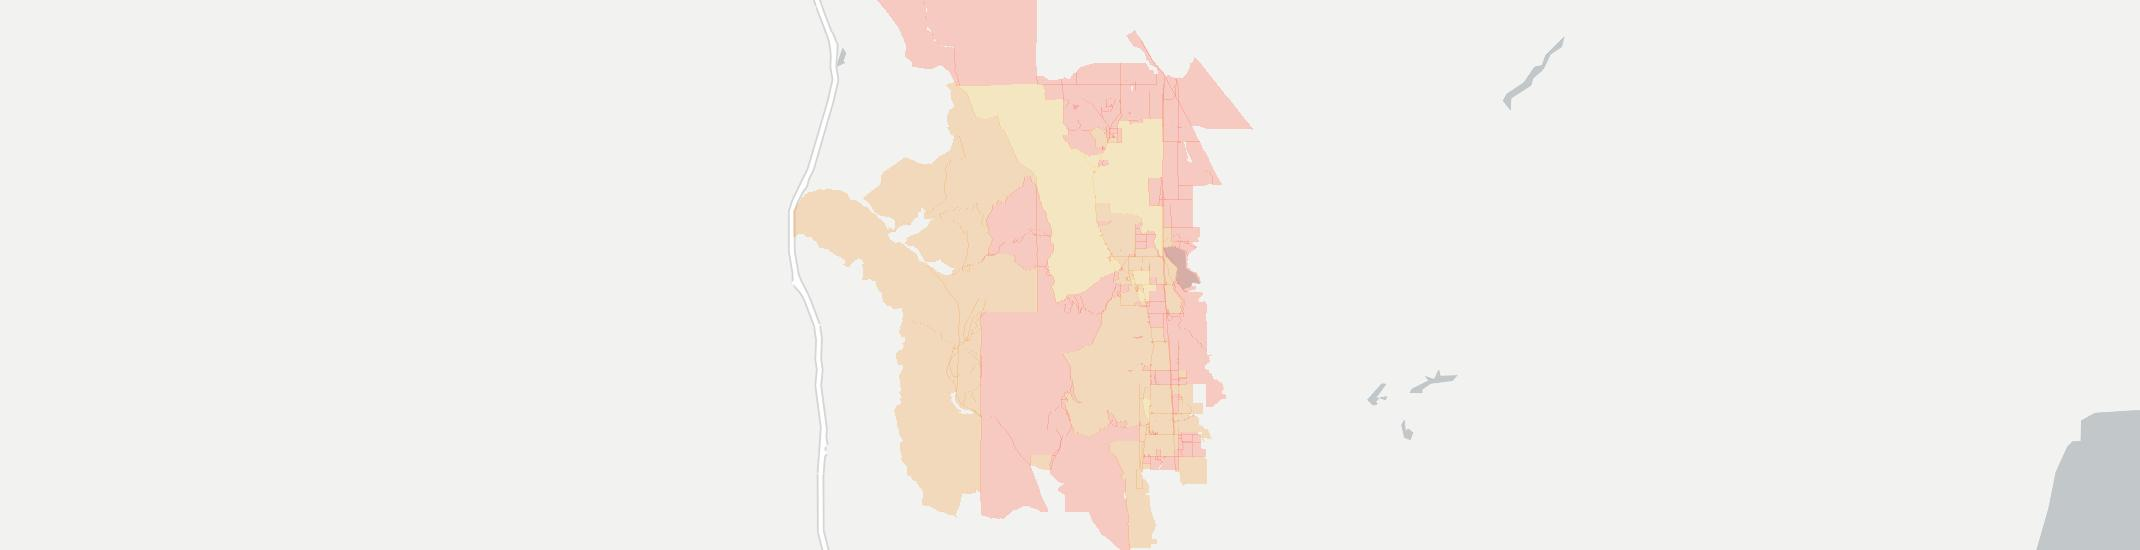 Clifton Internet Competition Map. Click for interactive map.